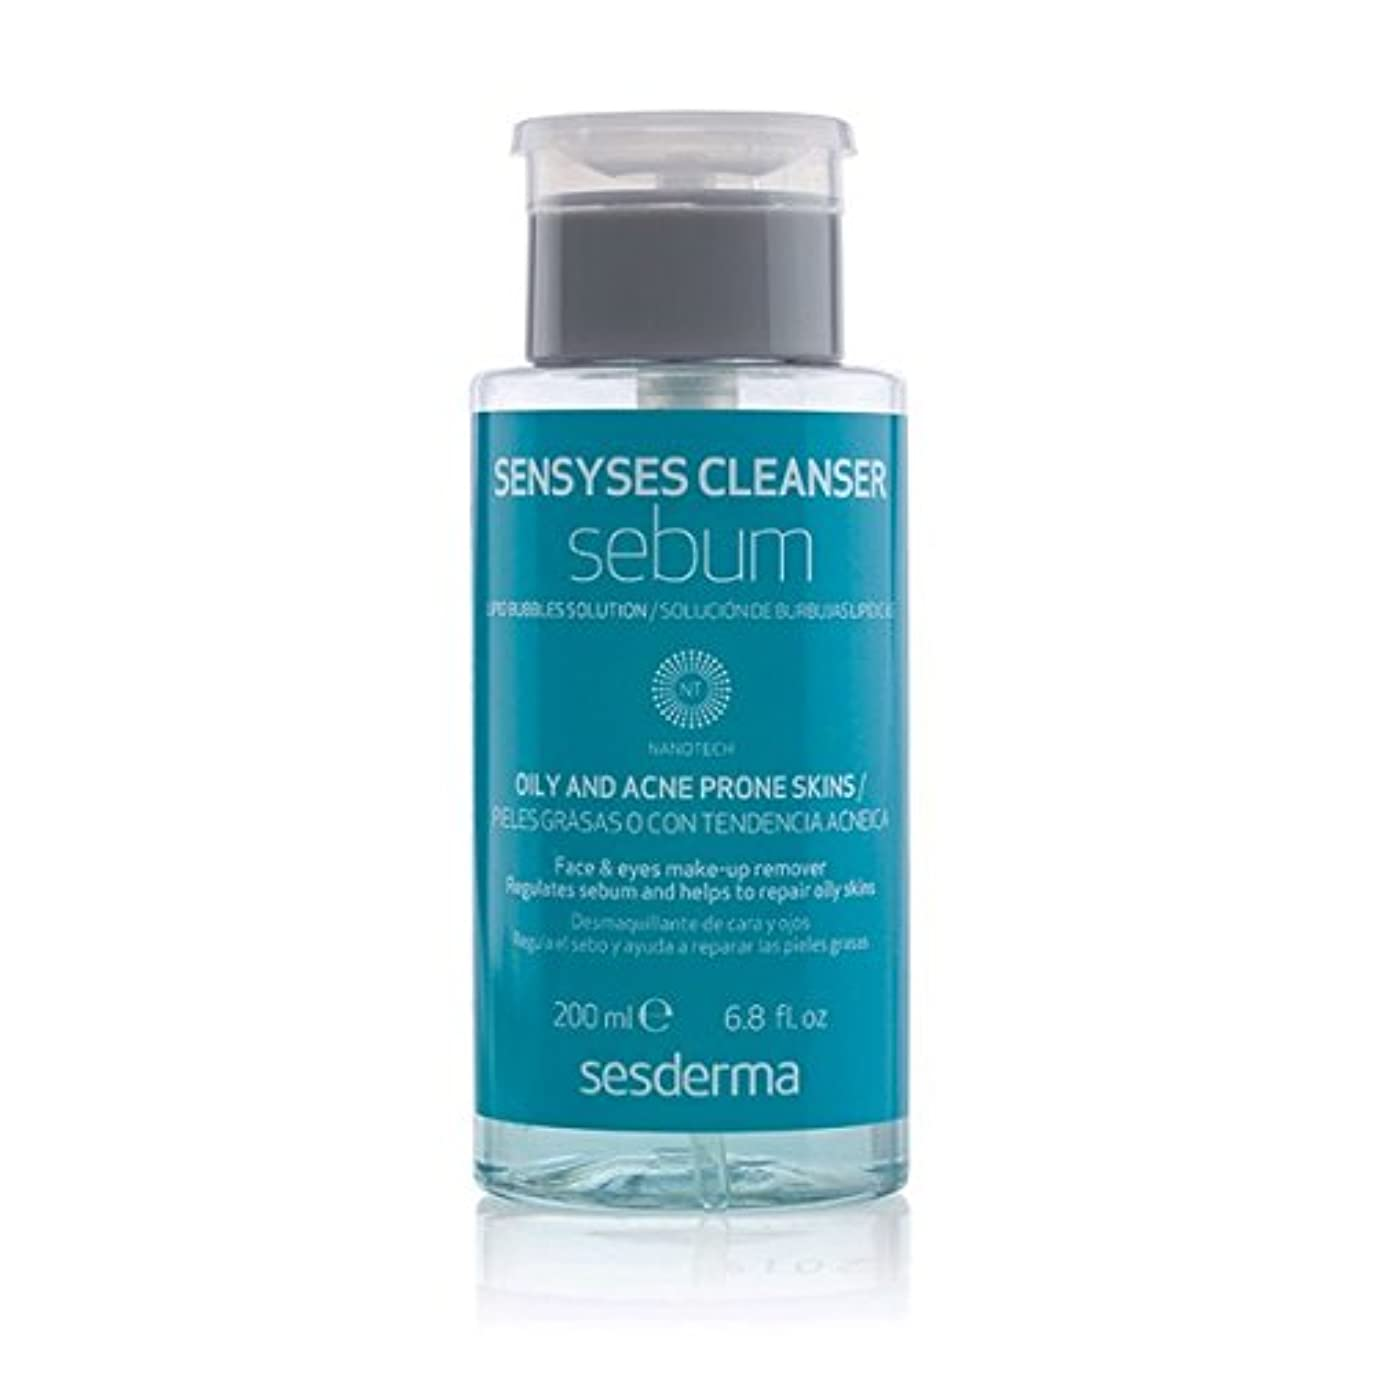 捧げる凝視キャンペーンSesderma Sensyses Cleanser Sebum Lipid Bubbles Solution 200ml [並行輸入品]